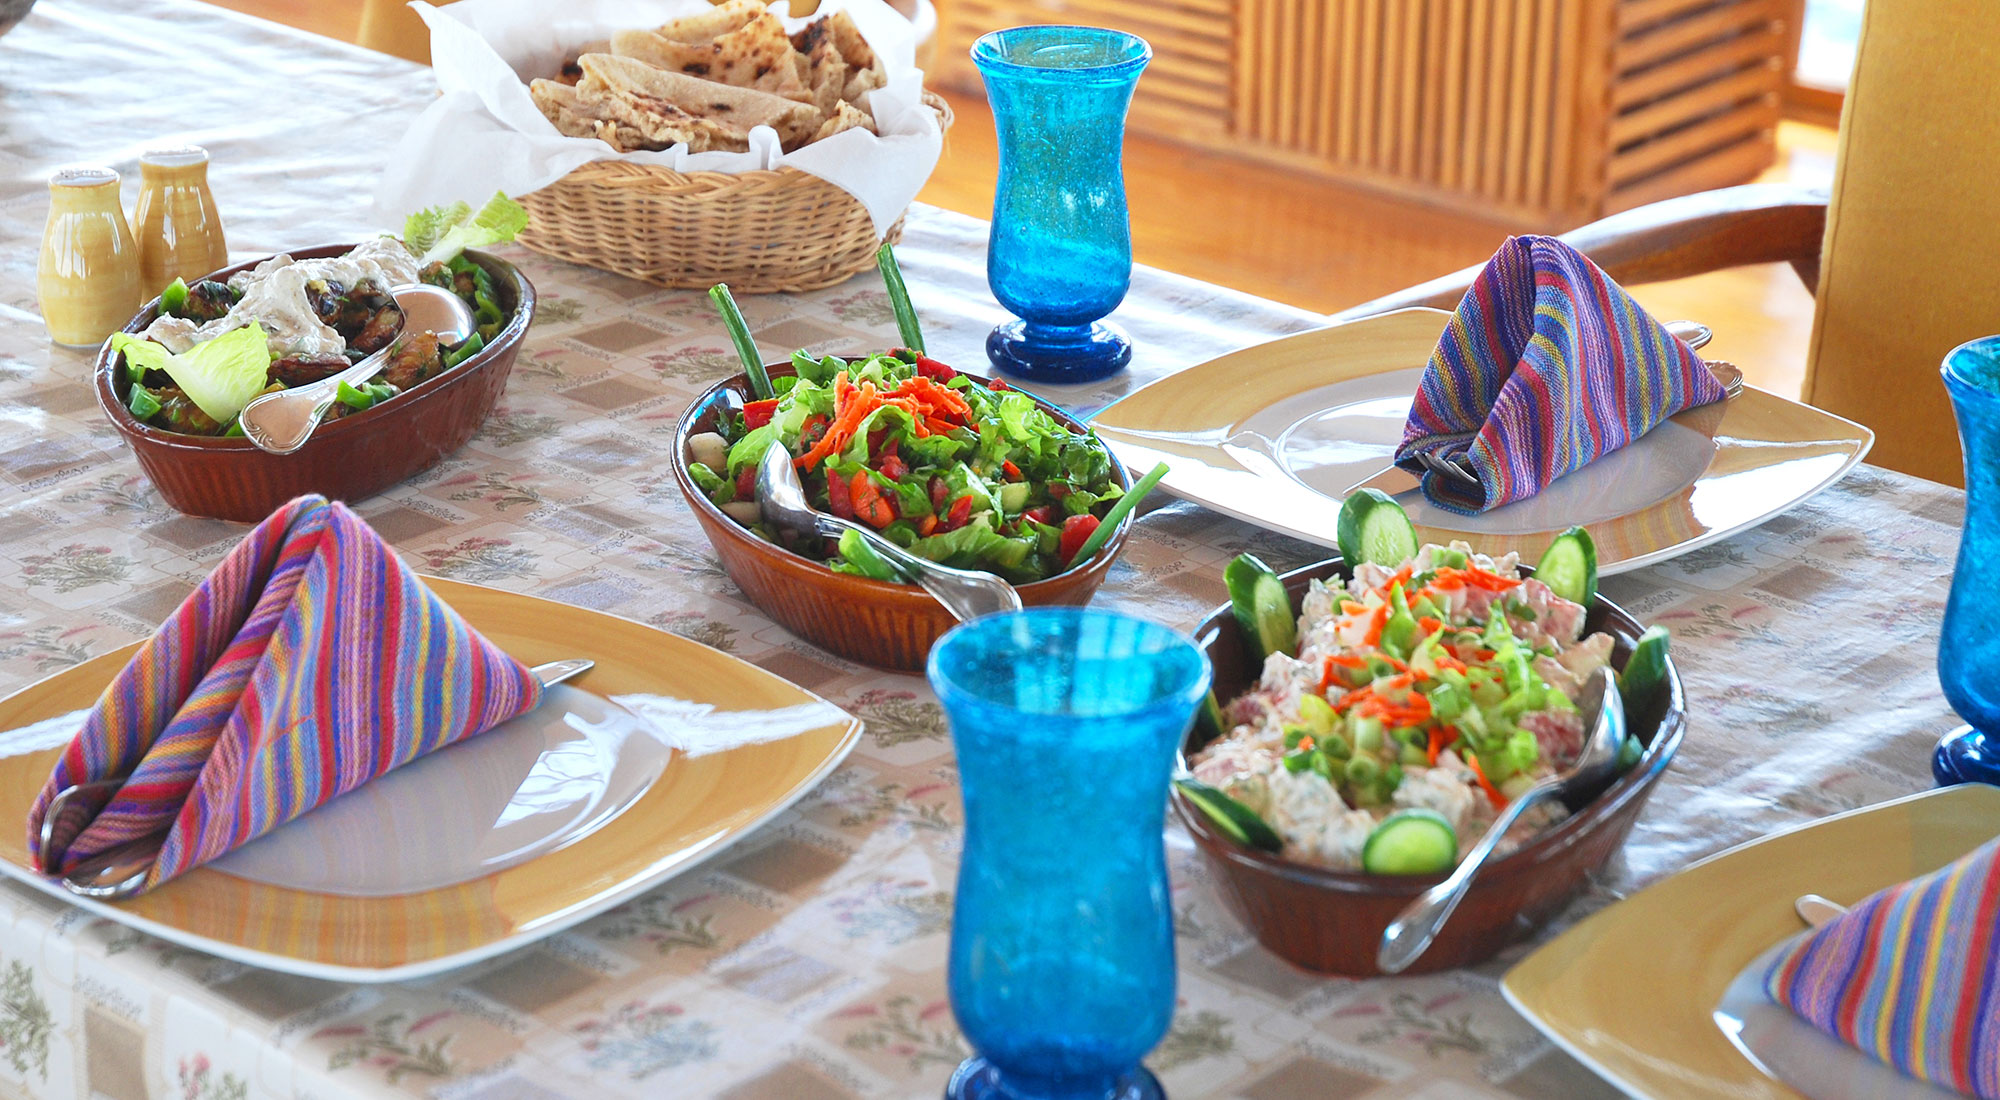 Authentic dishes with Egyptian and Mediterranean-inspired flavours